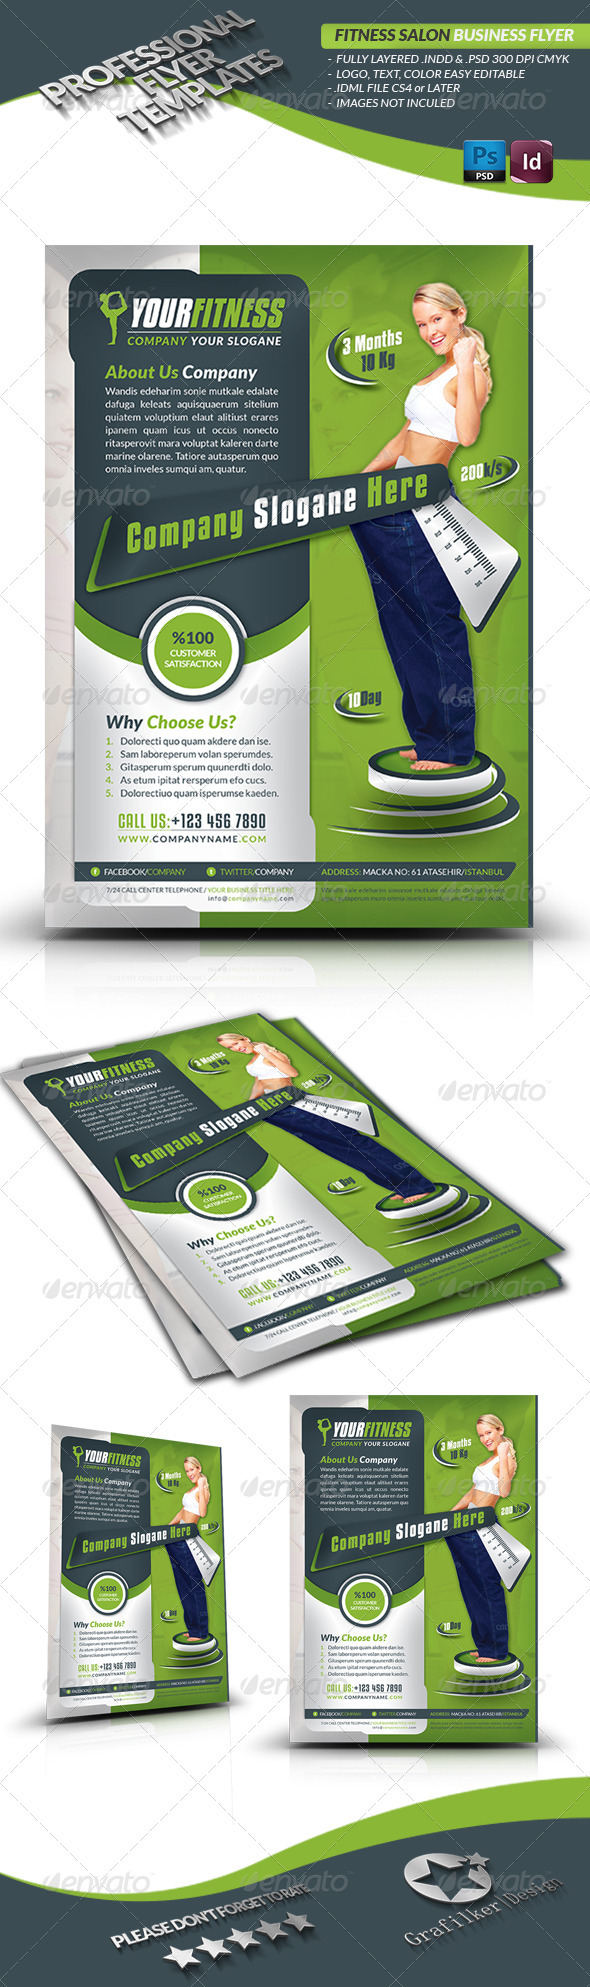 GraphicRiver Fitness Center Business Flyer 3660367